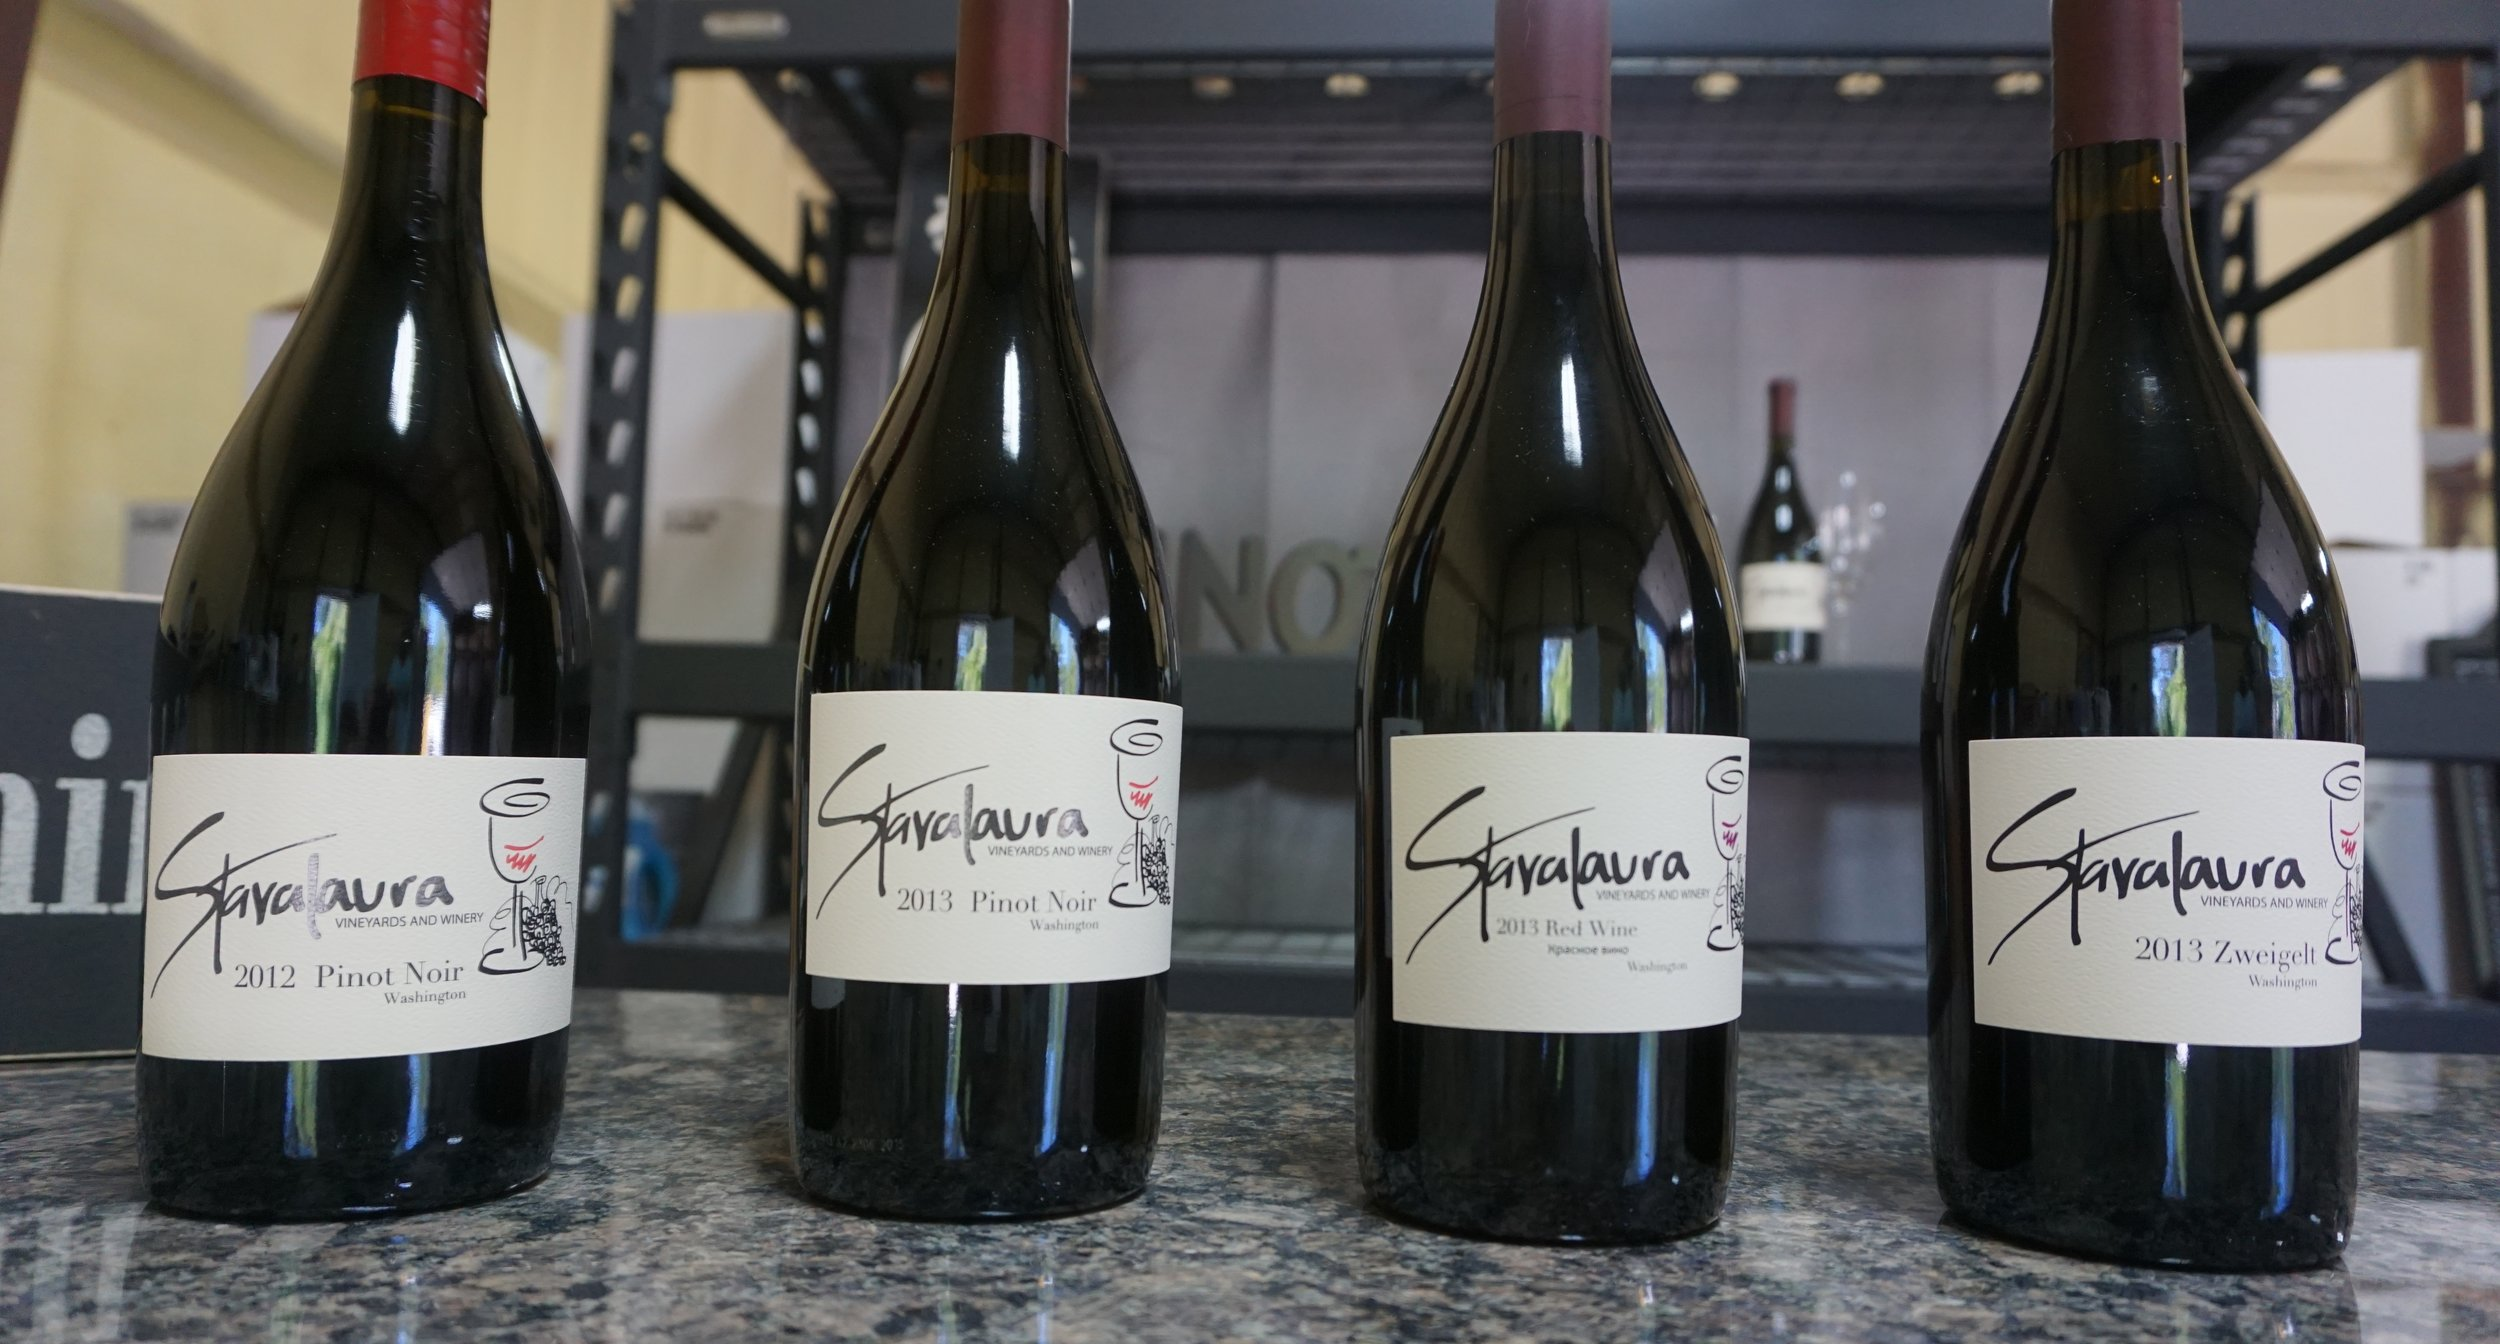 Stavalaura Vineyards—located three miles off the Ridgefield exit— is excited to introduce visitors to lesser-known varietals when they open Saturday, May 7. Viki Eierdam